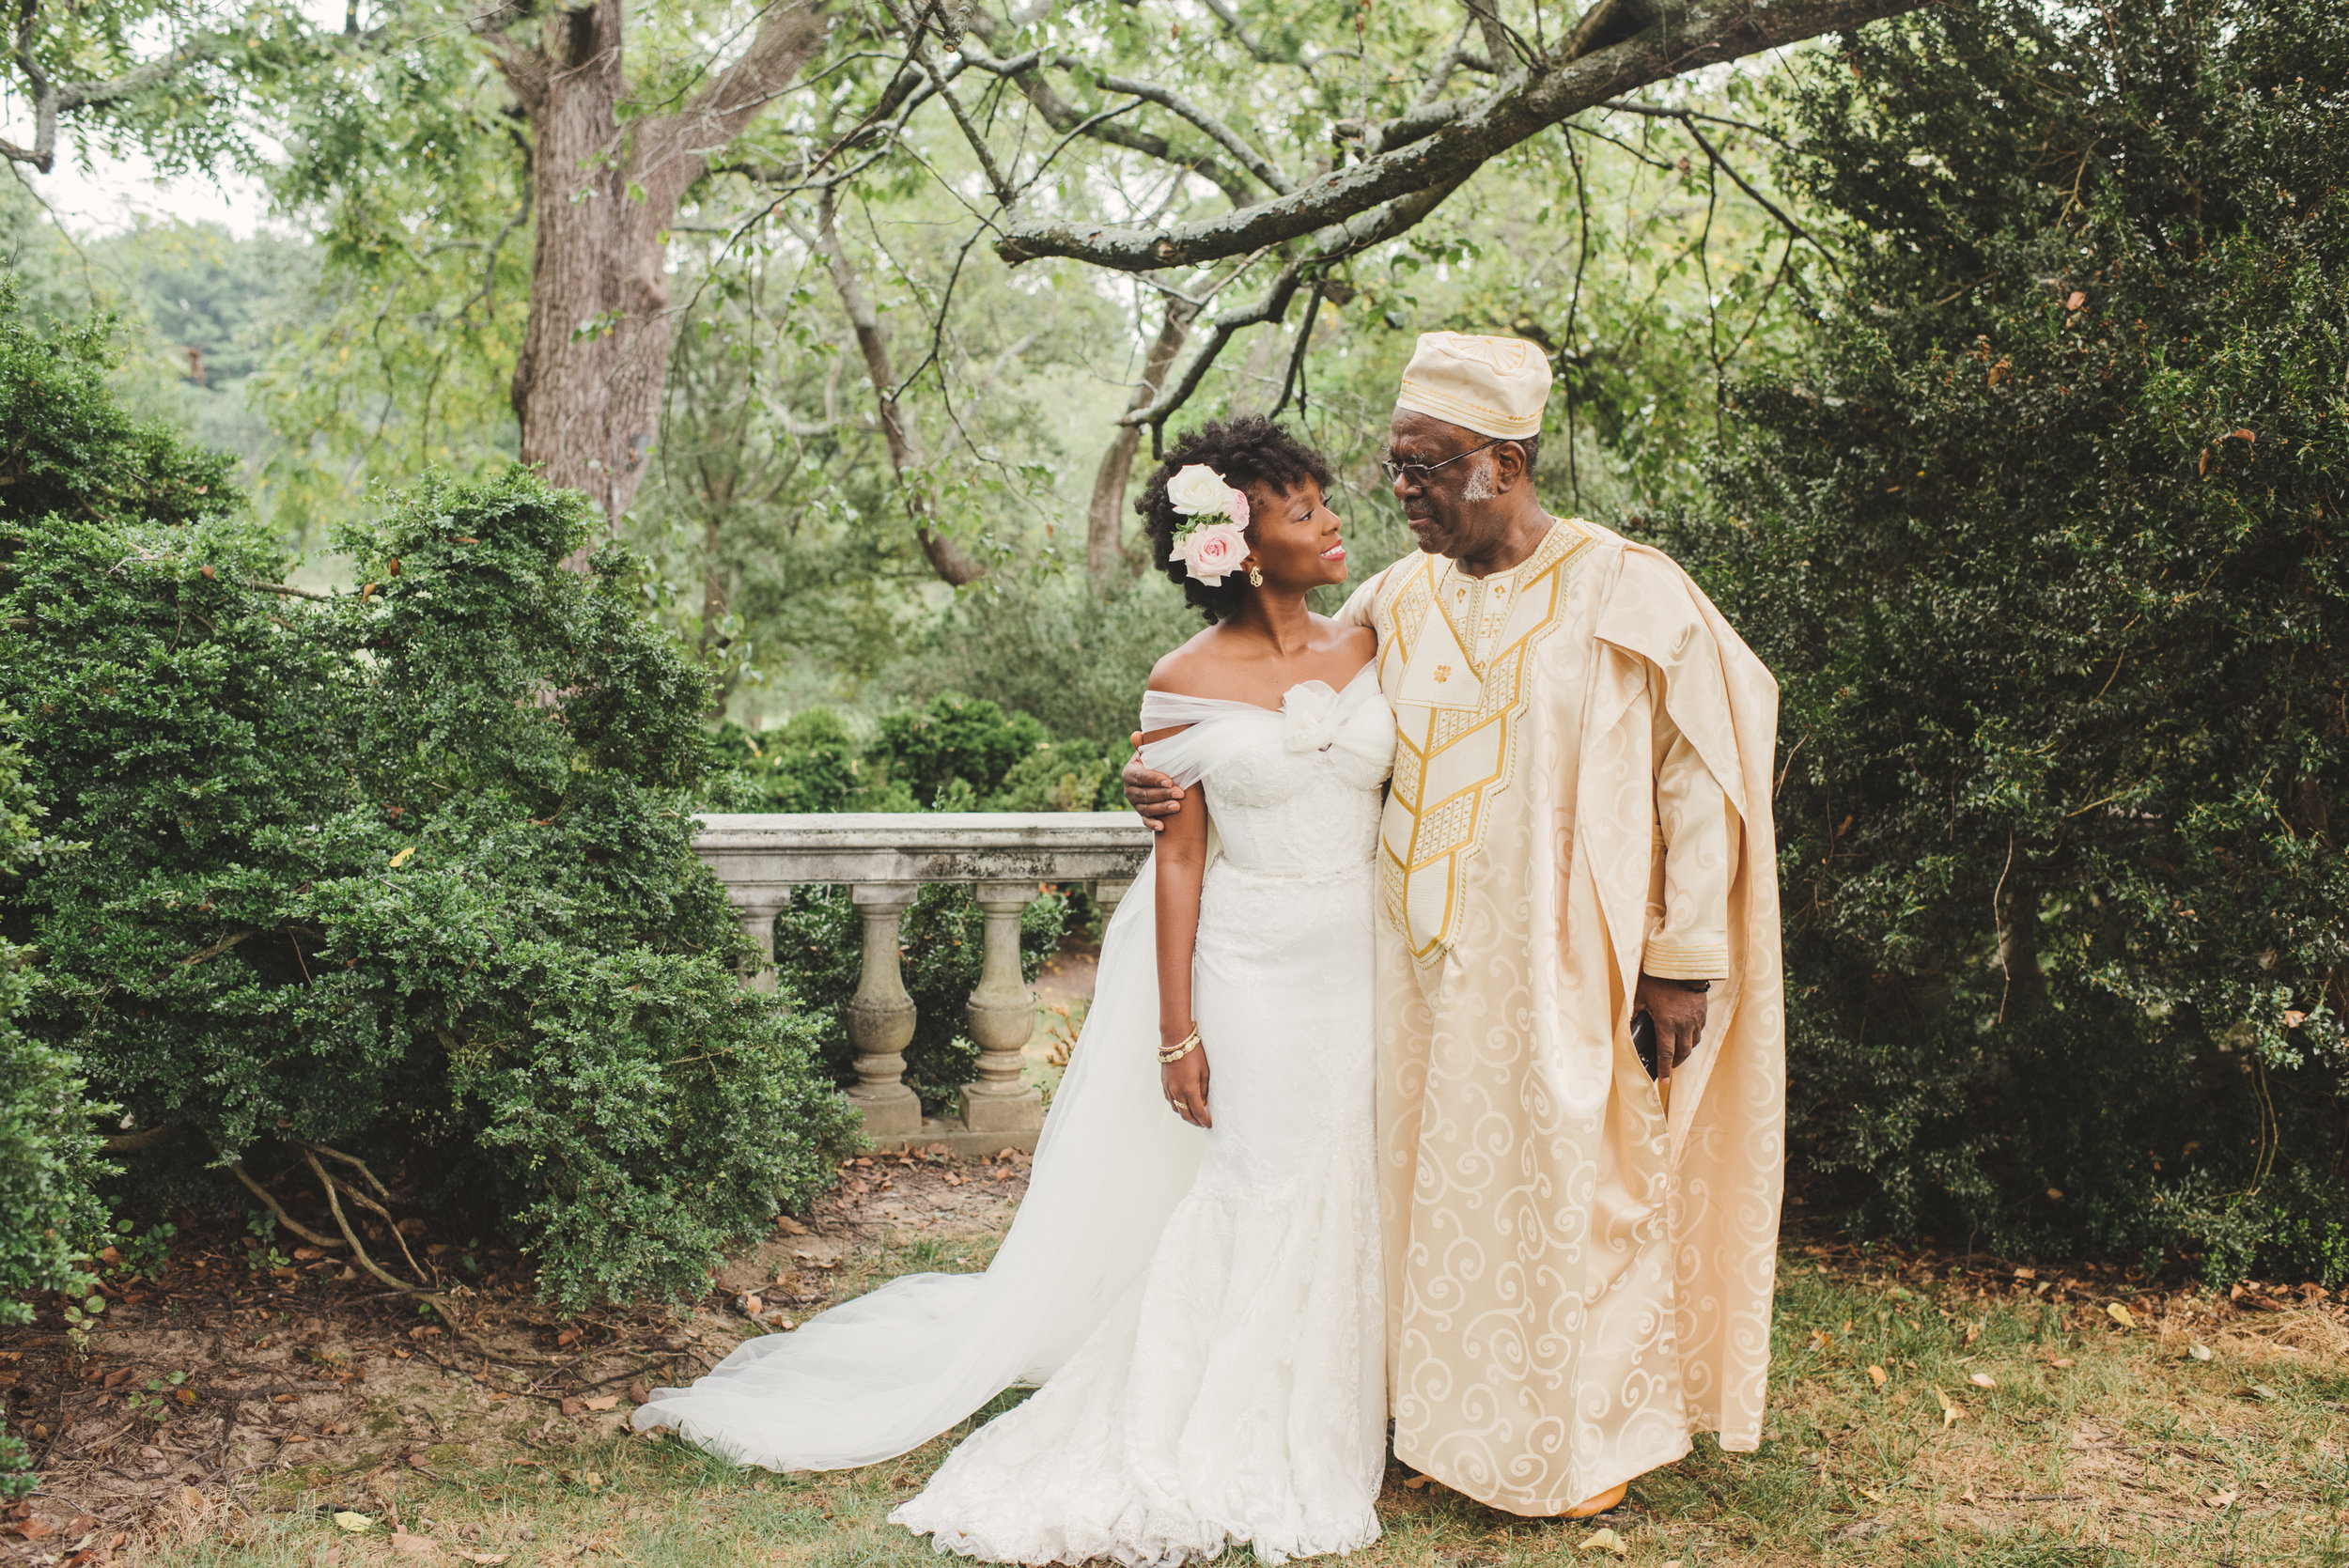 GLENVIEW MANSION WEDDING - INTIMATE WEDDING PHOTOGRAPHER - TWOTWENTY by CHI-CHI AGBIM-189.jpg